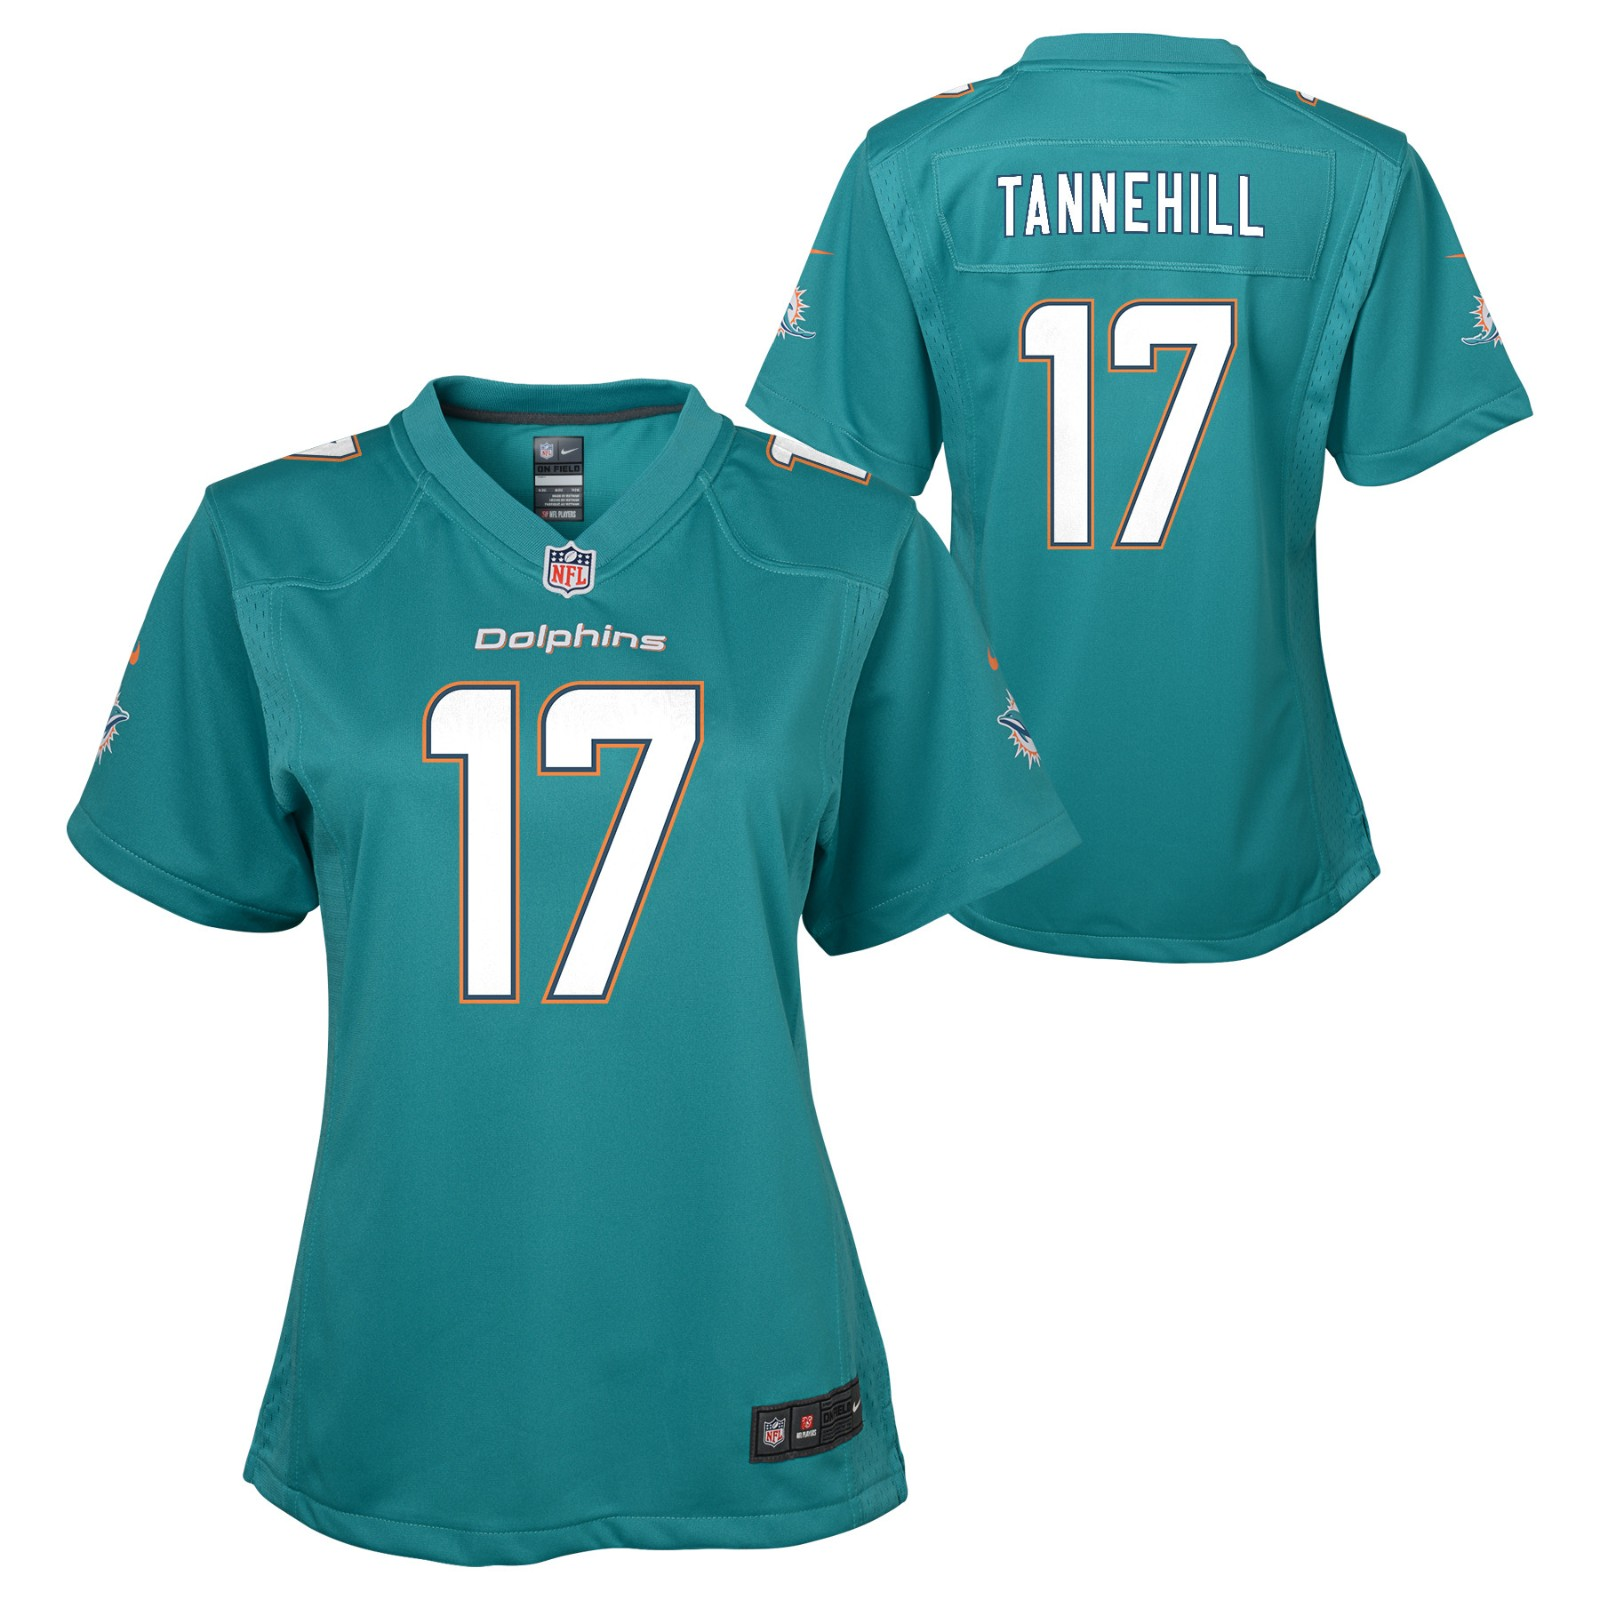 079b1381 Details about Ryan Tannehill Miami Dolphins NFL Nike Girls Youth Teal Game  Jersey